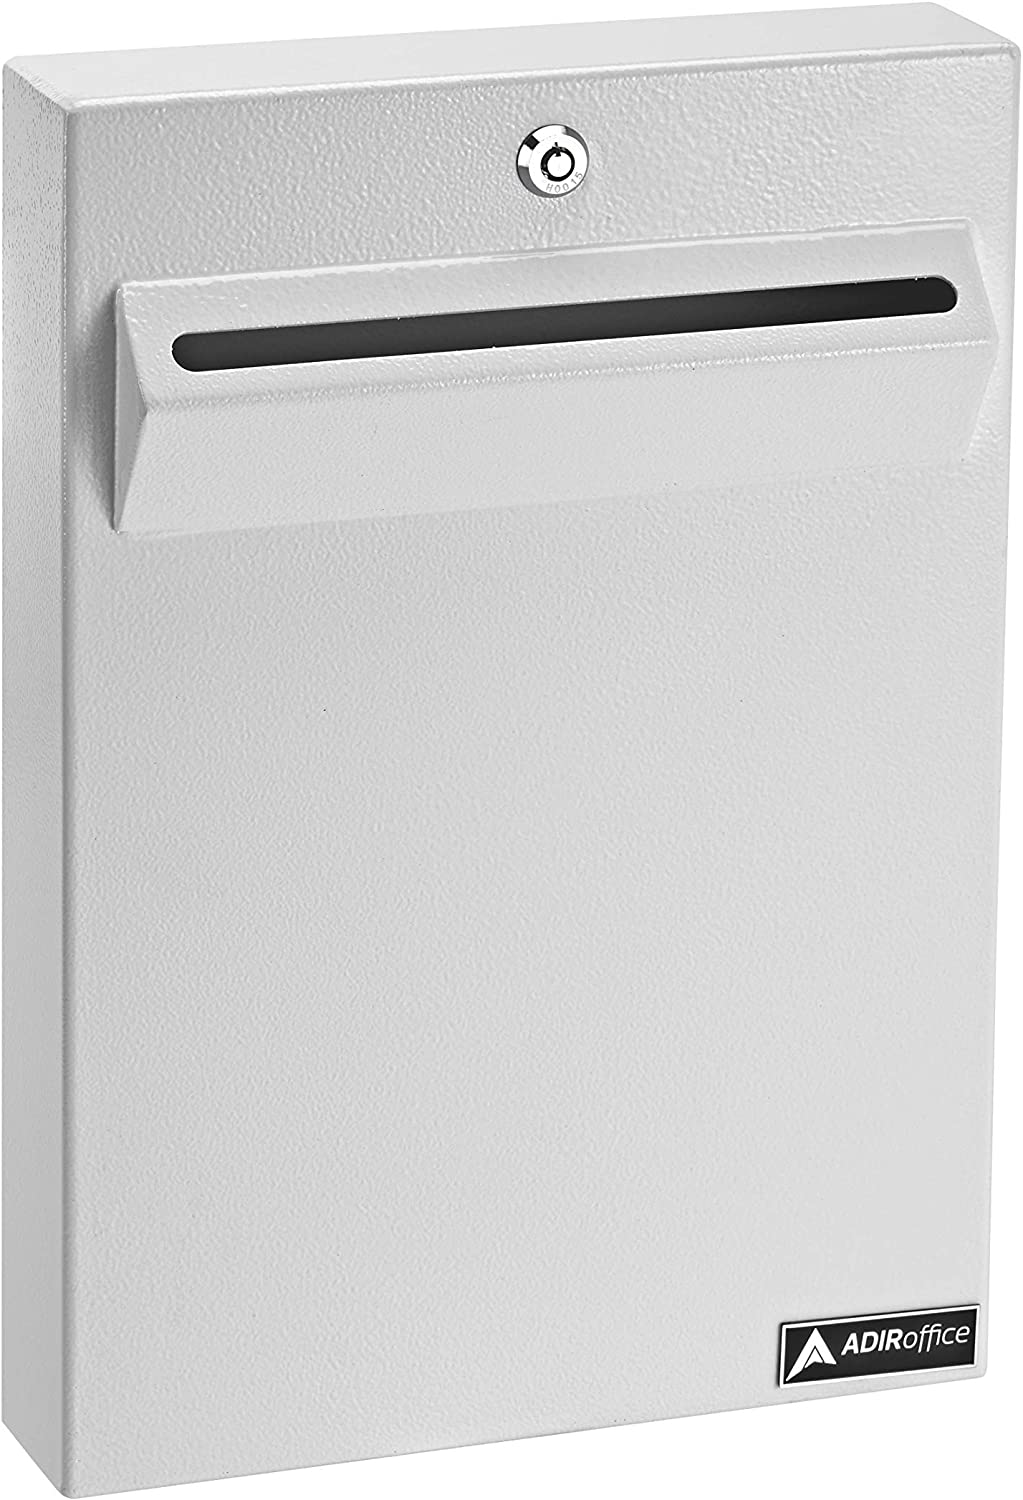 AdirOffice Wall Mount Drop Box - Heavy Duty Secured Storage with Lock - for Commercial Home Office or Business Use (White)